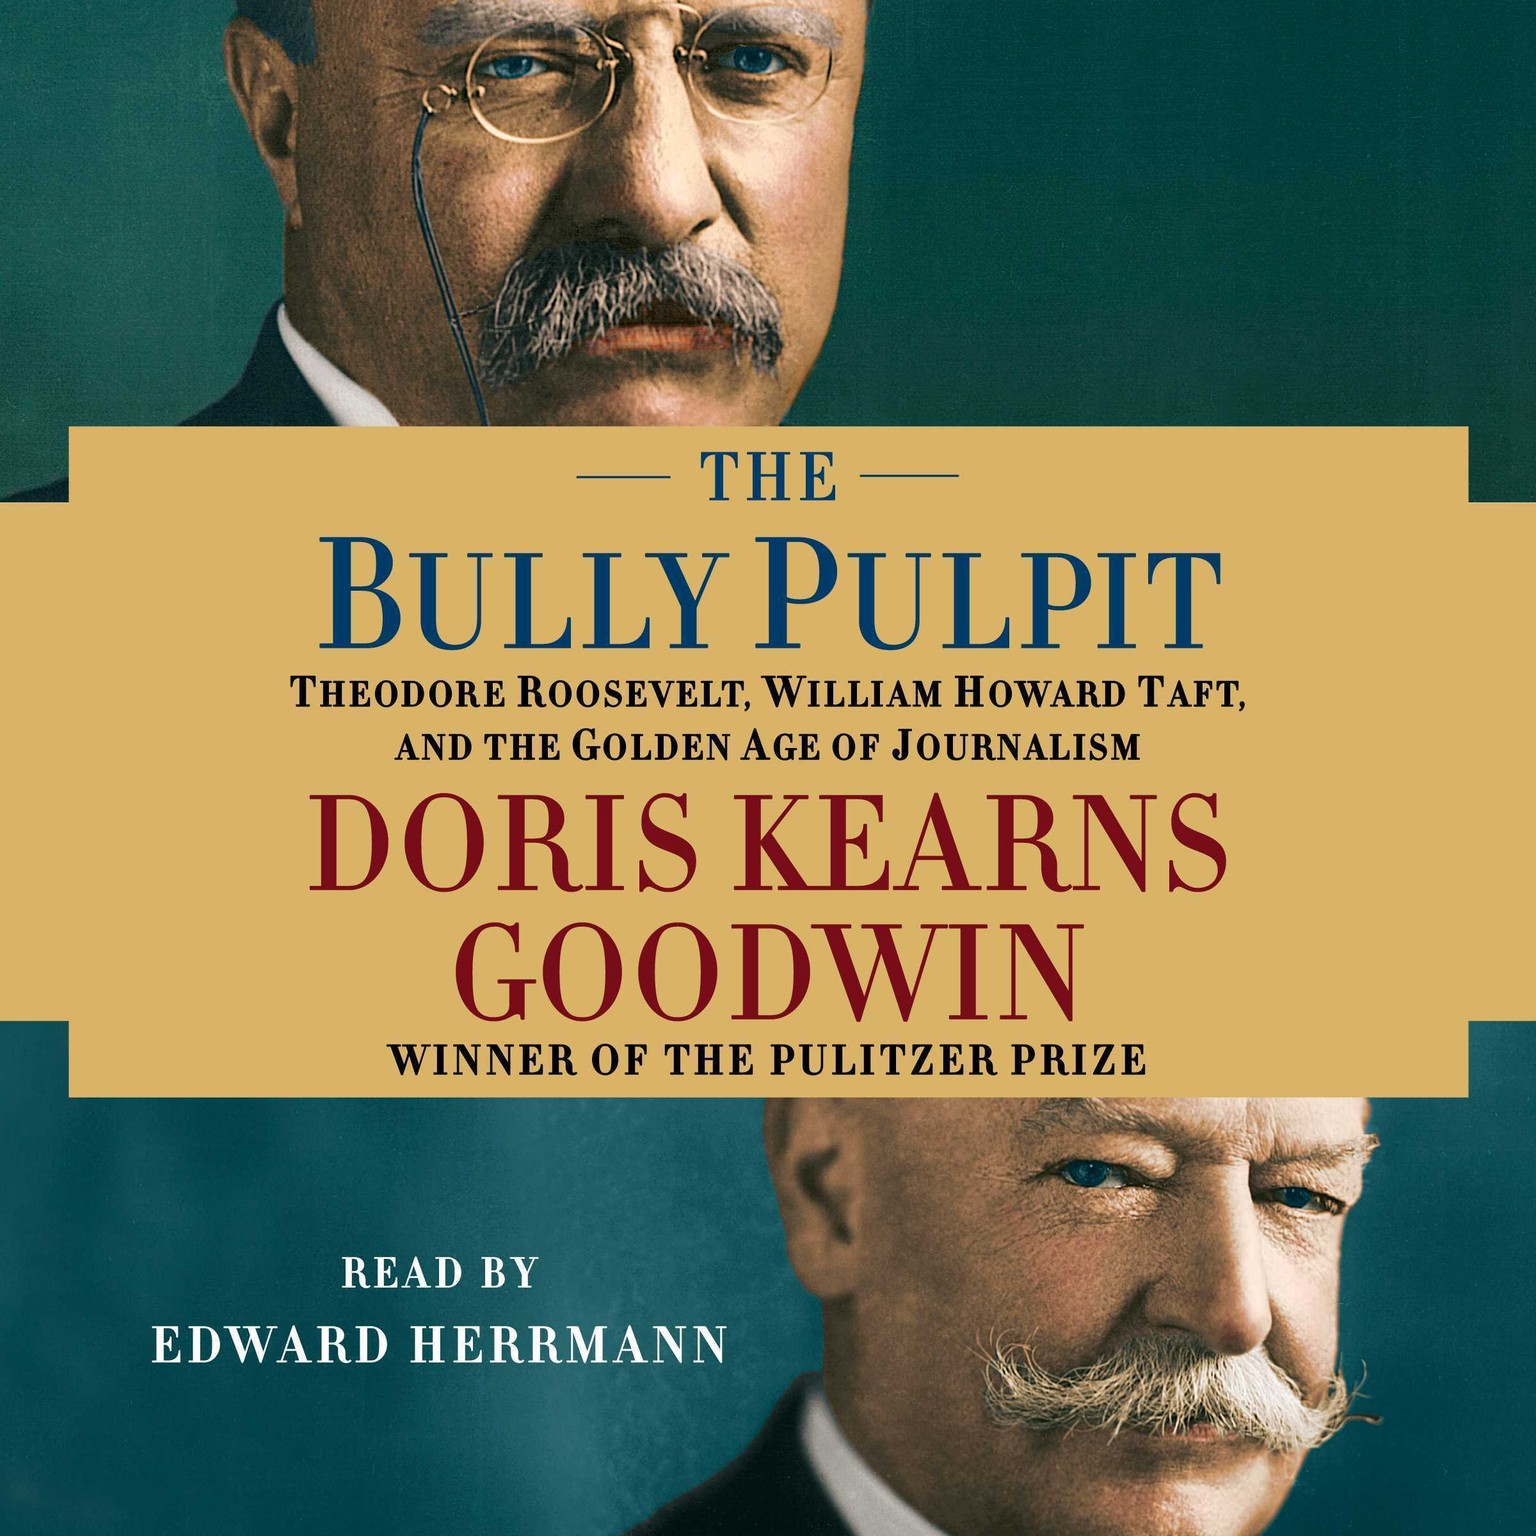 Printable The Bully Pulpit: Theodore Roosevelt, William Howard Taft, and the Golden Age of Journalism Audiobook Cover Art